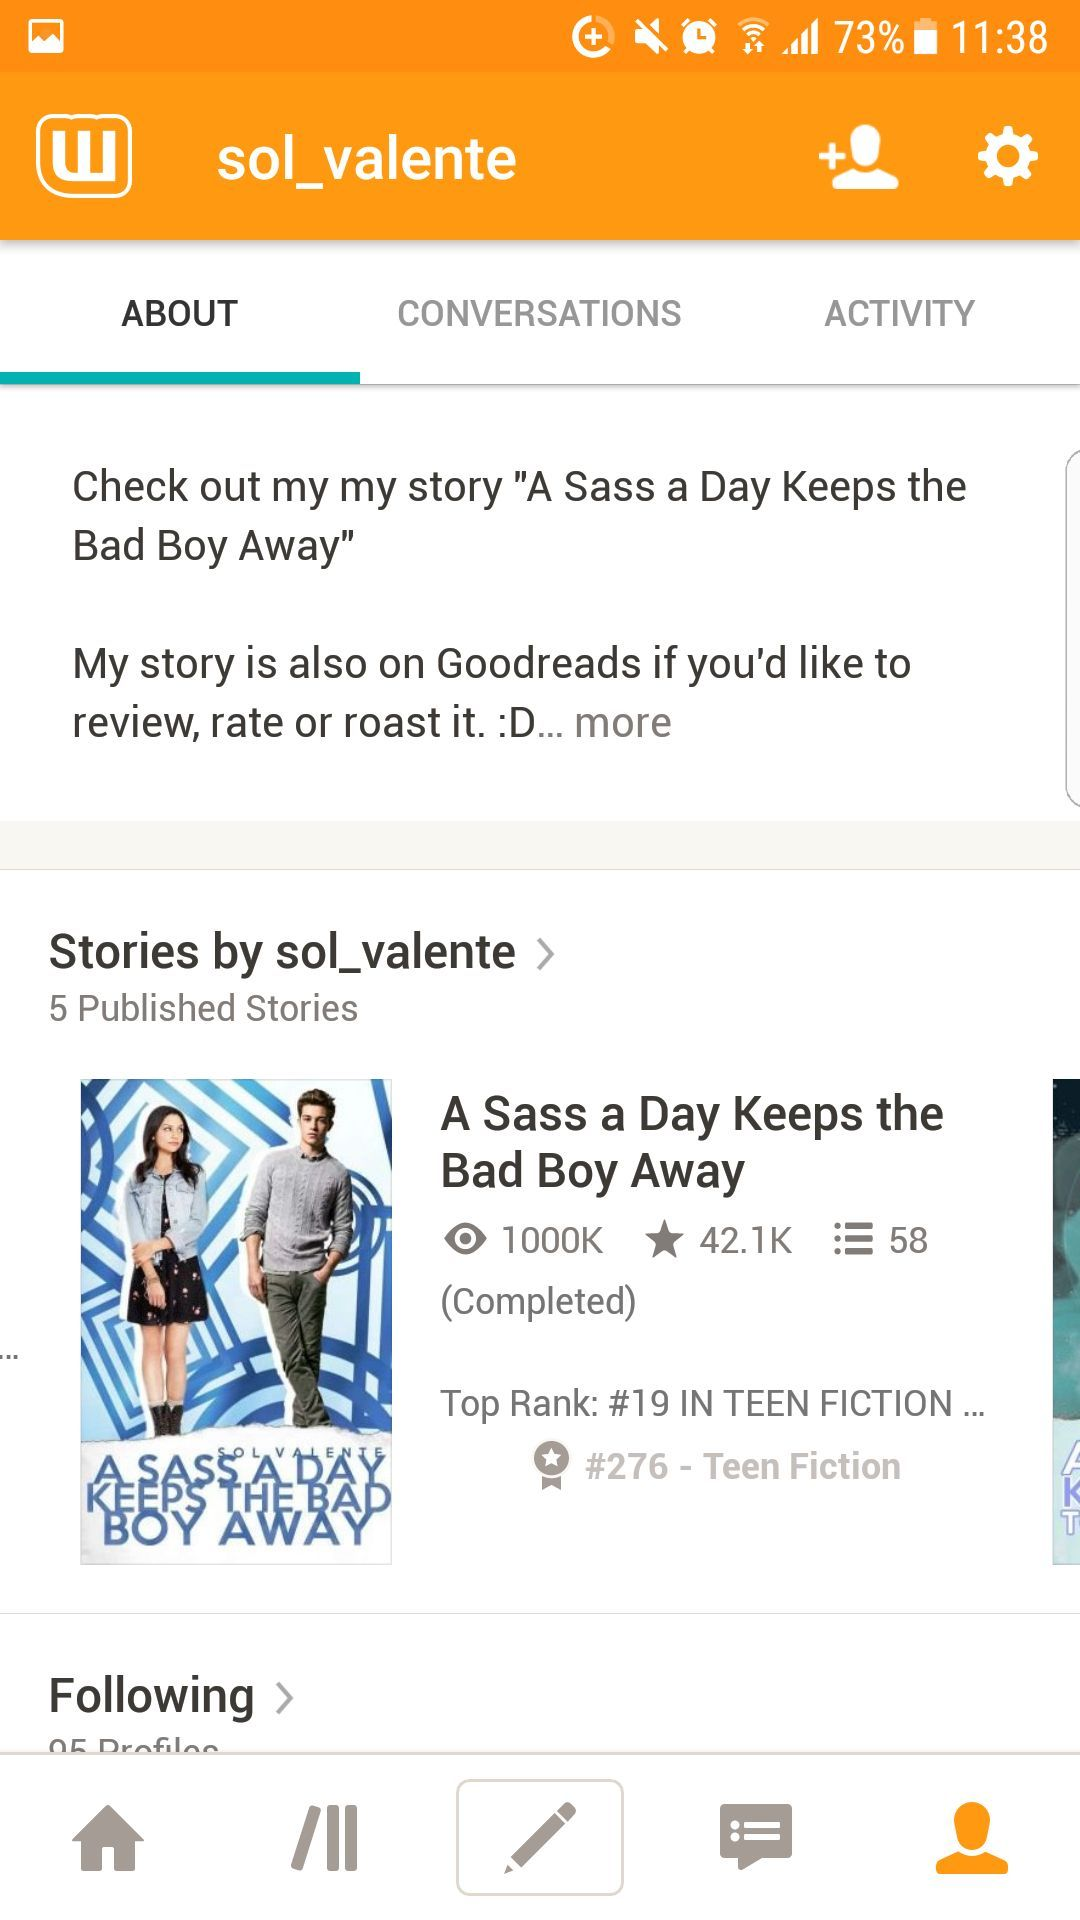 This is a huge milestone and accomplishment for me and I'm still really overwhelmed since the 27th February was the day I posted the first chapter of this story and I can't believe it's almost been a year